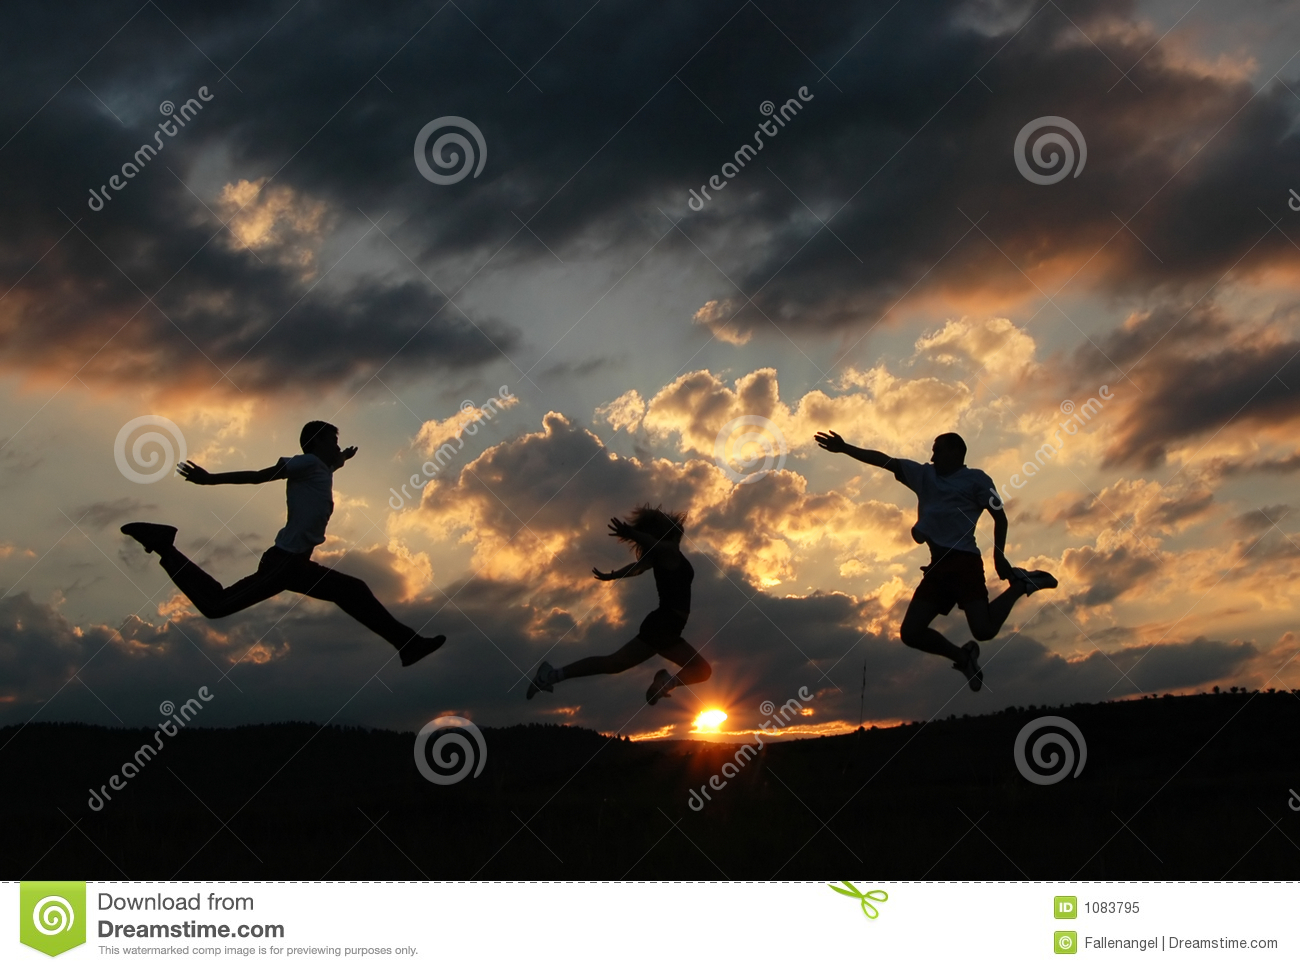 jump for joy royalty free stock photo image 1083795